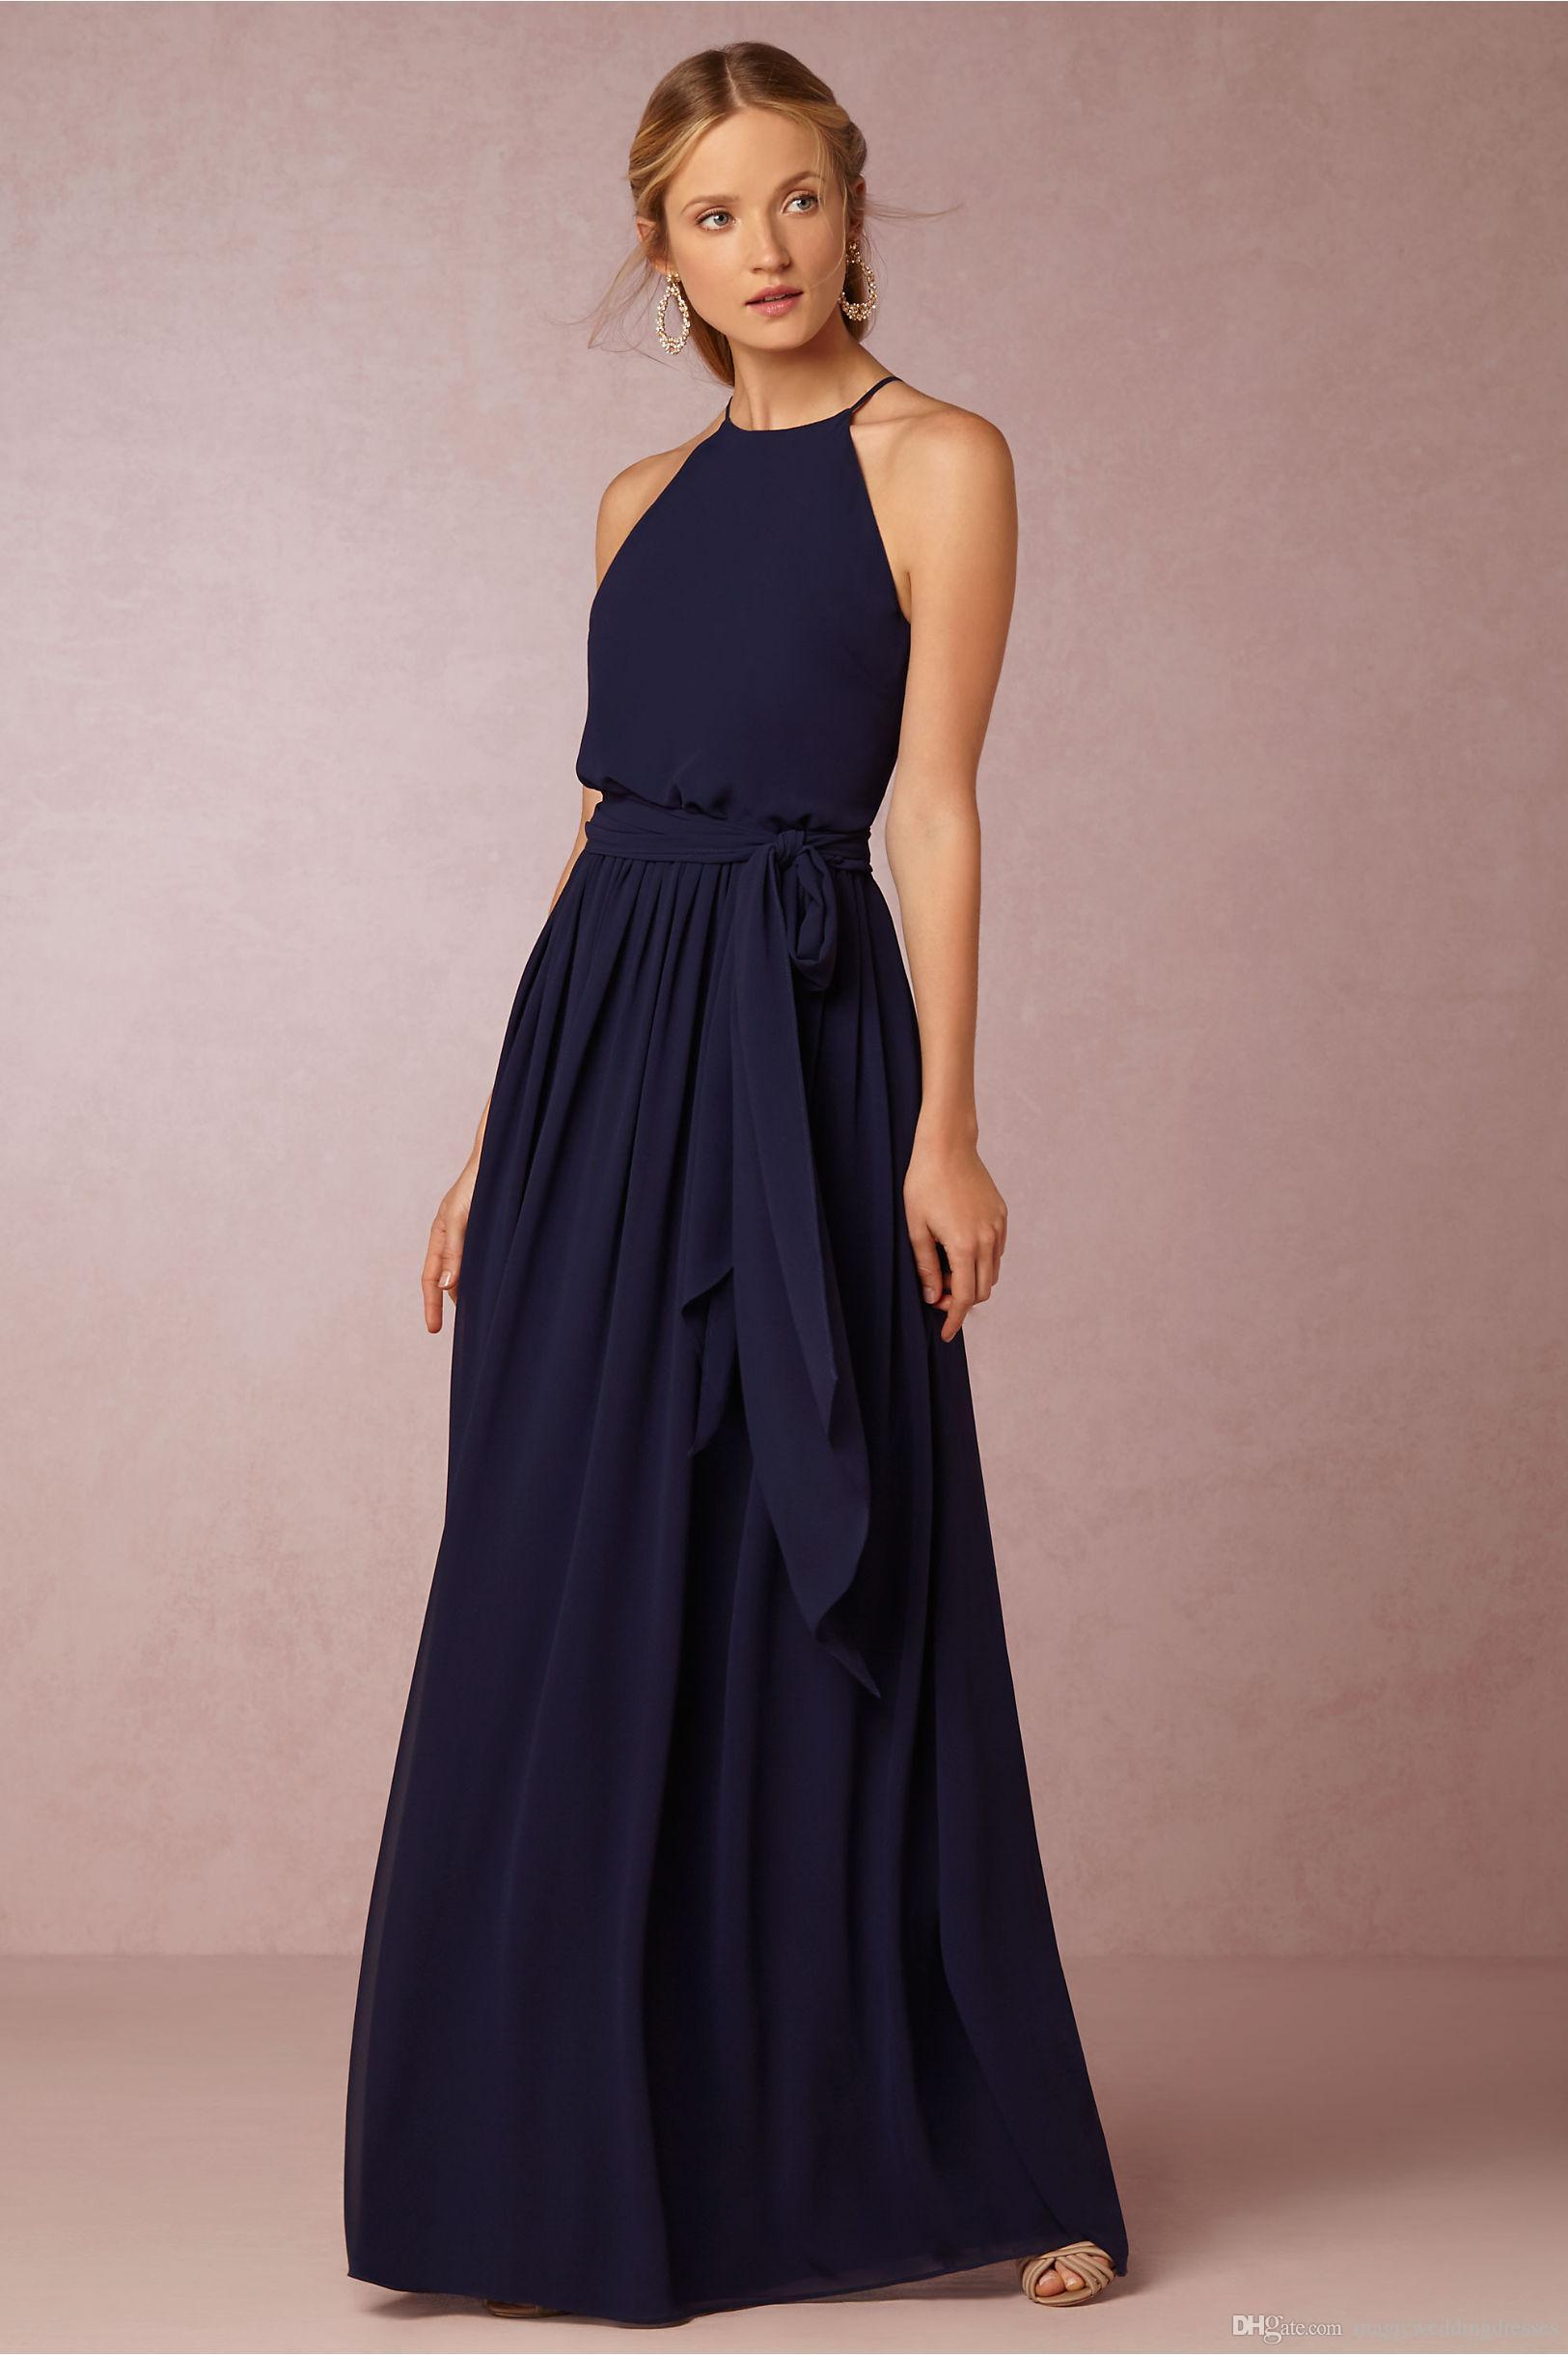 Long navy blue bridesmaid dresses bhldn 2016 chiffon summer beach long navy blue bridesmaid dresses bhldn 2016 chiffon summer beach wedding party dresses long floor length cheap bridesmaid formal dresses 2017 bridesmaid ombrellifo Gallery